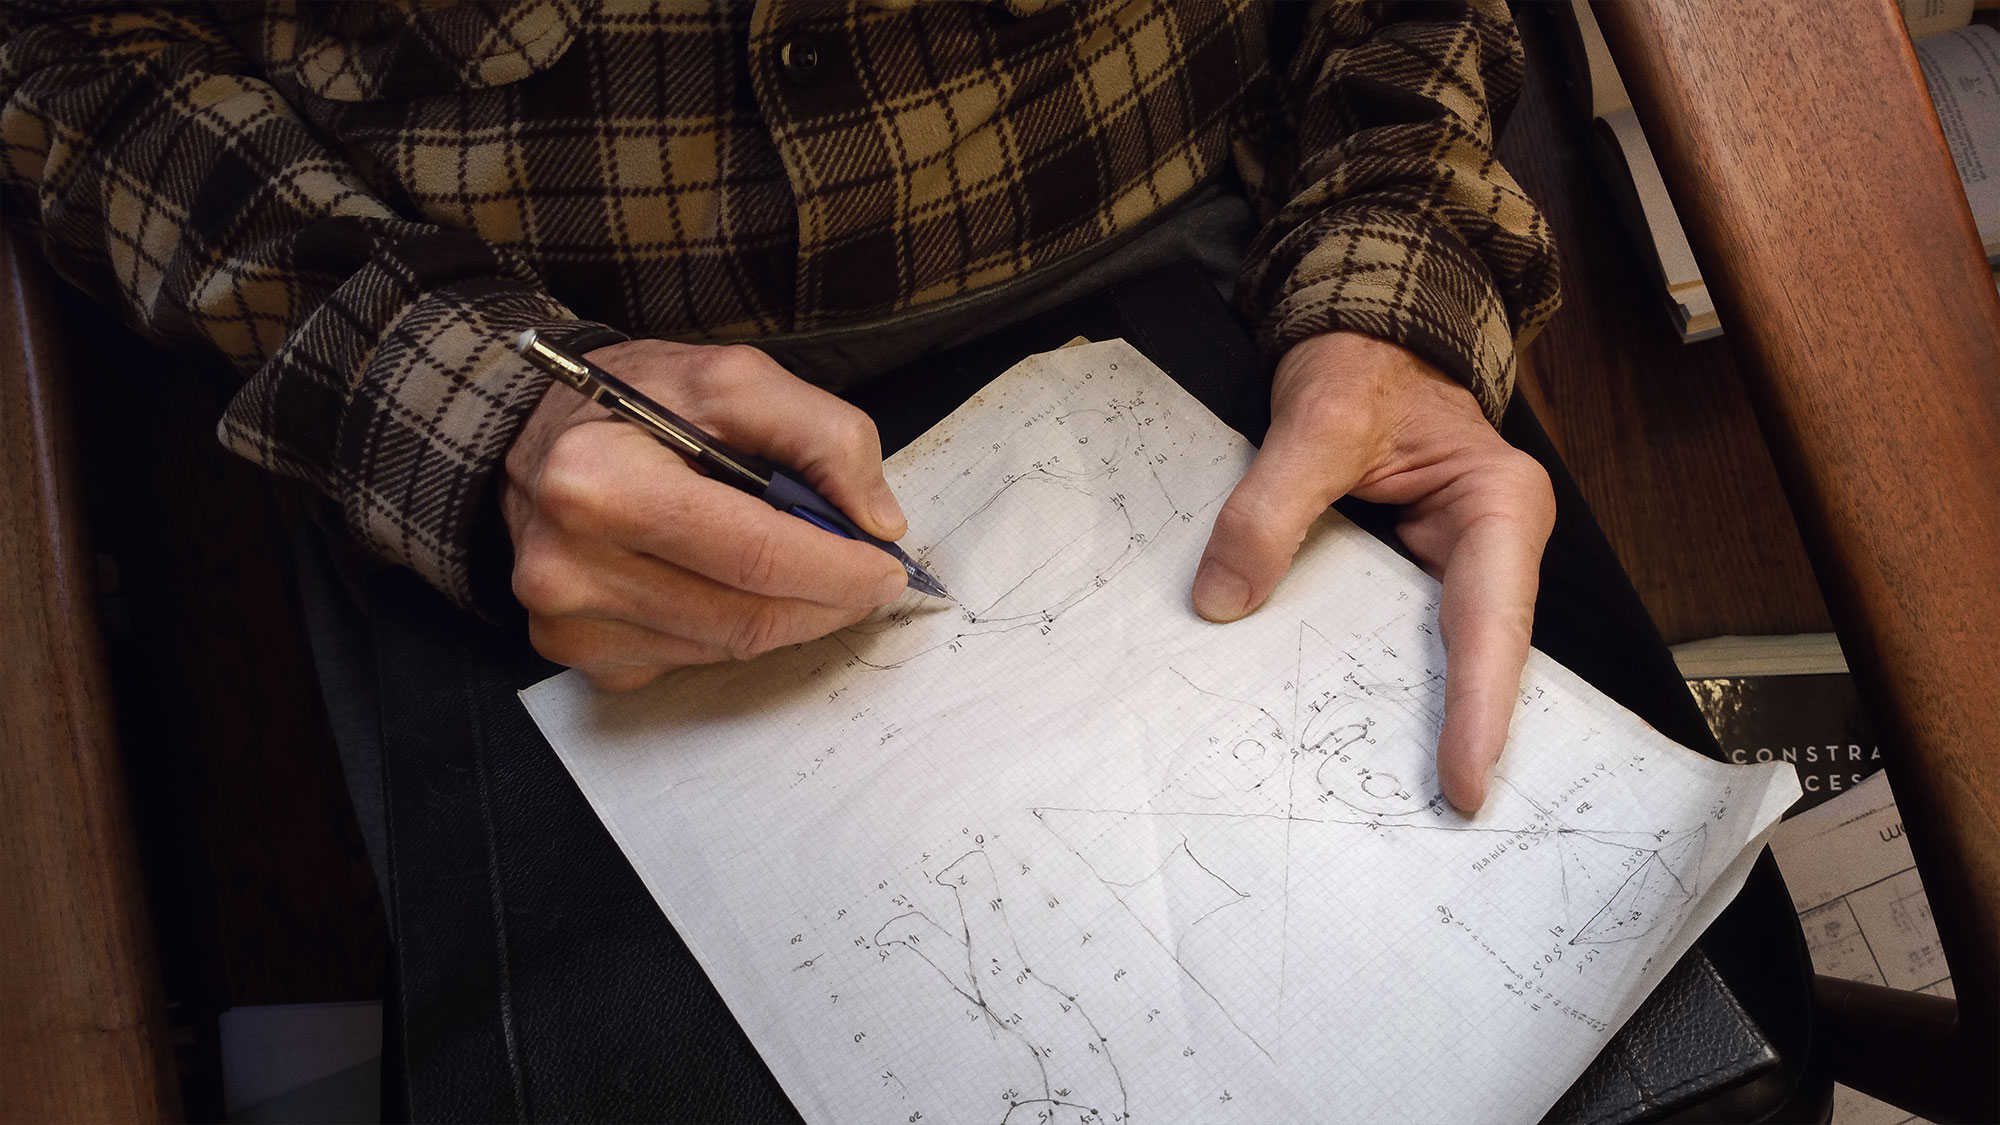 Photo of Donald Knuth drawing diagrams by hand, working on The Art of Computer Programming